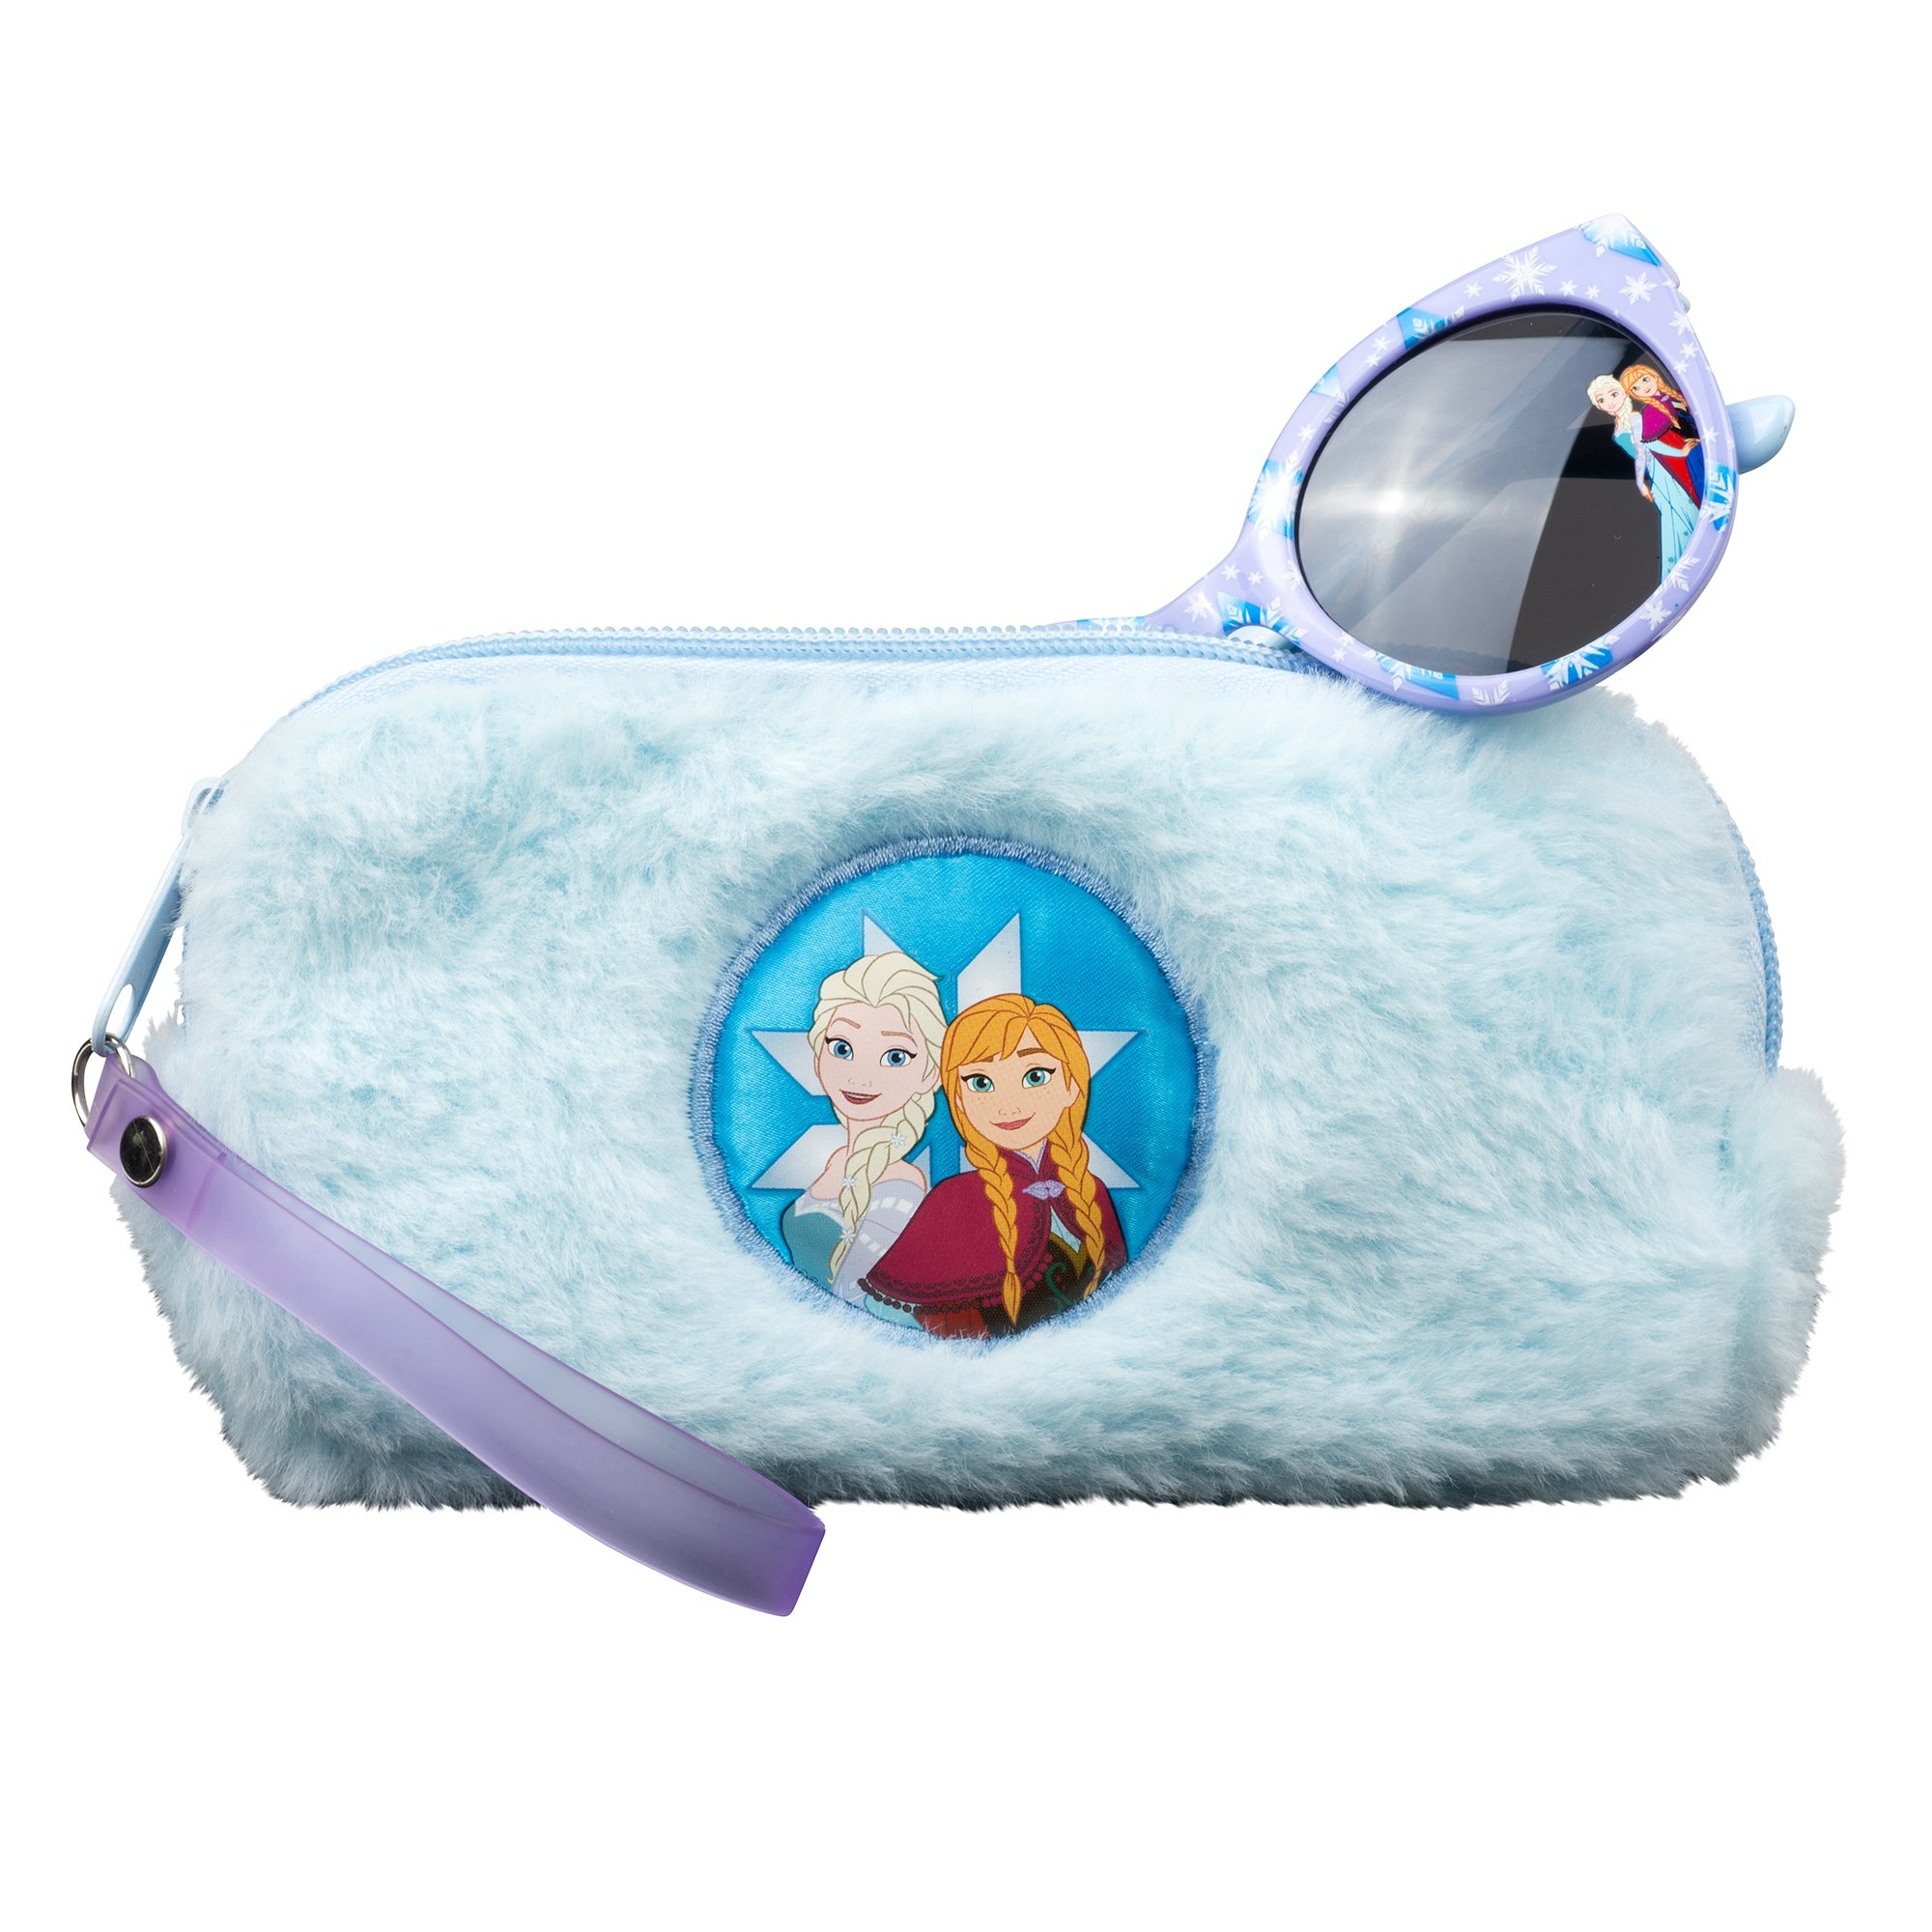 Frozen Sunglasses &Soft Fuzzy Carrying Case Set for Girls - 100% UV Protection for Kids